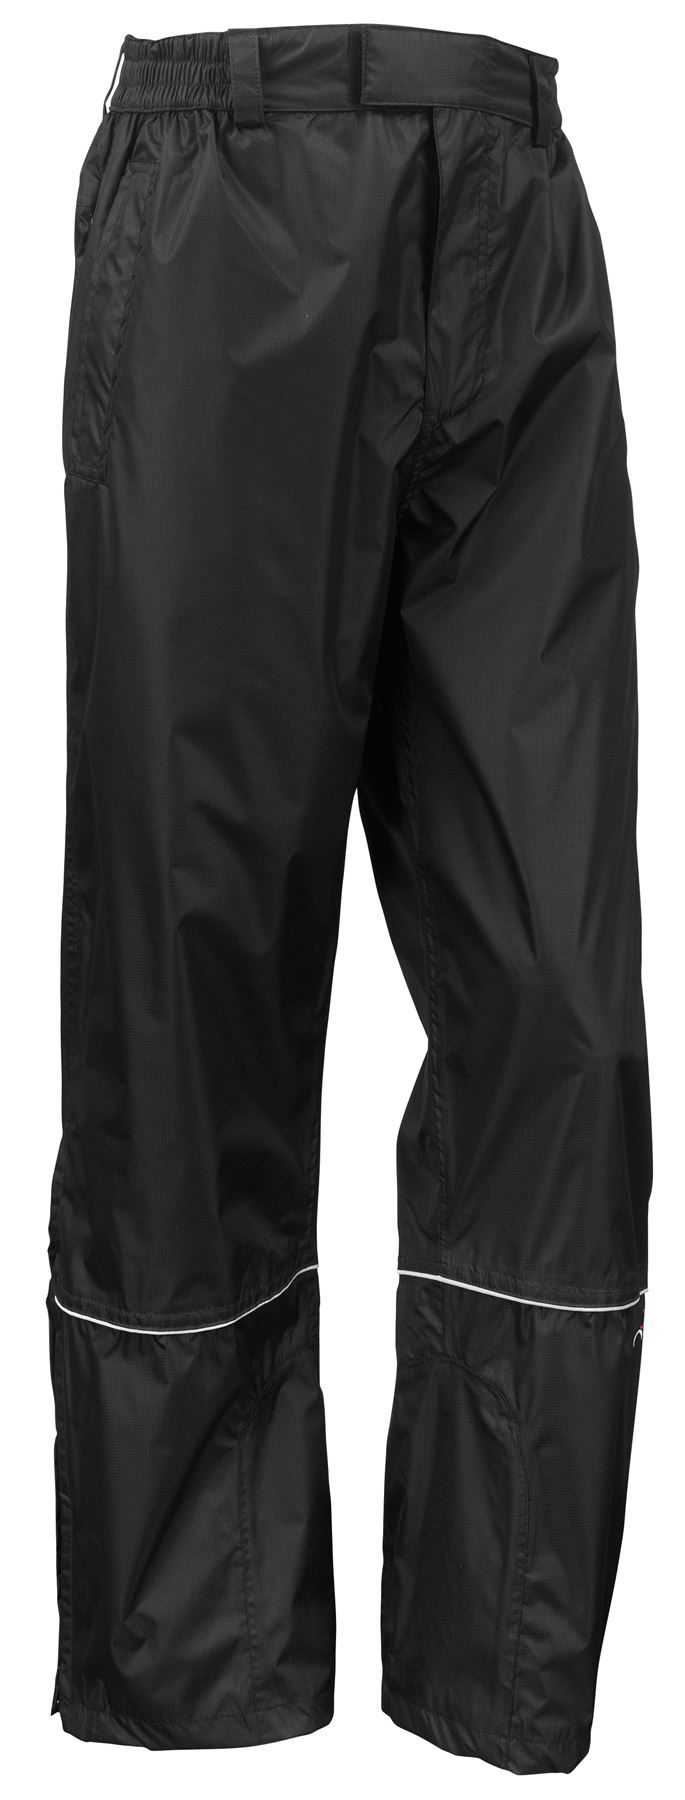 Result Max trousers performance trekking/training trousers Max 7de88a